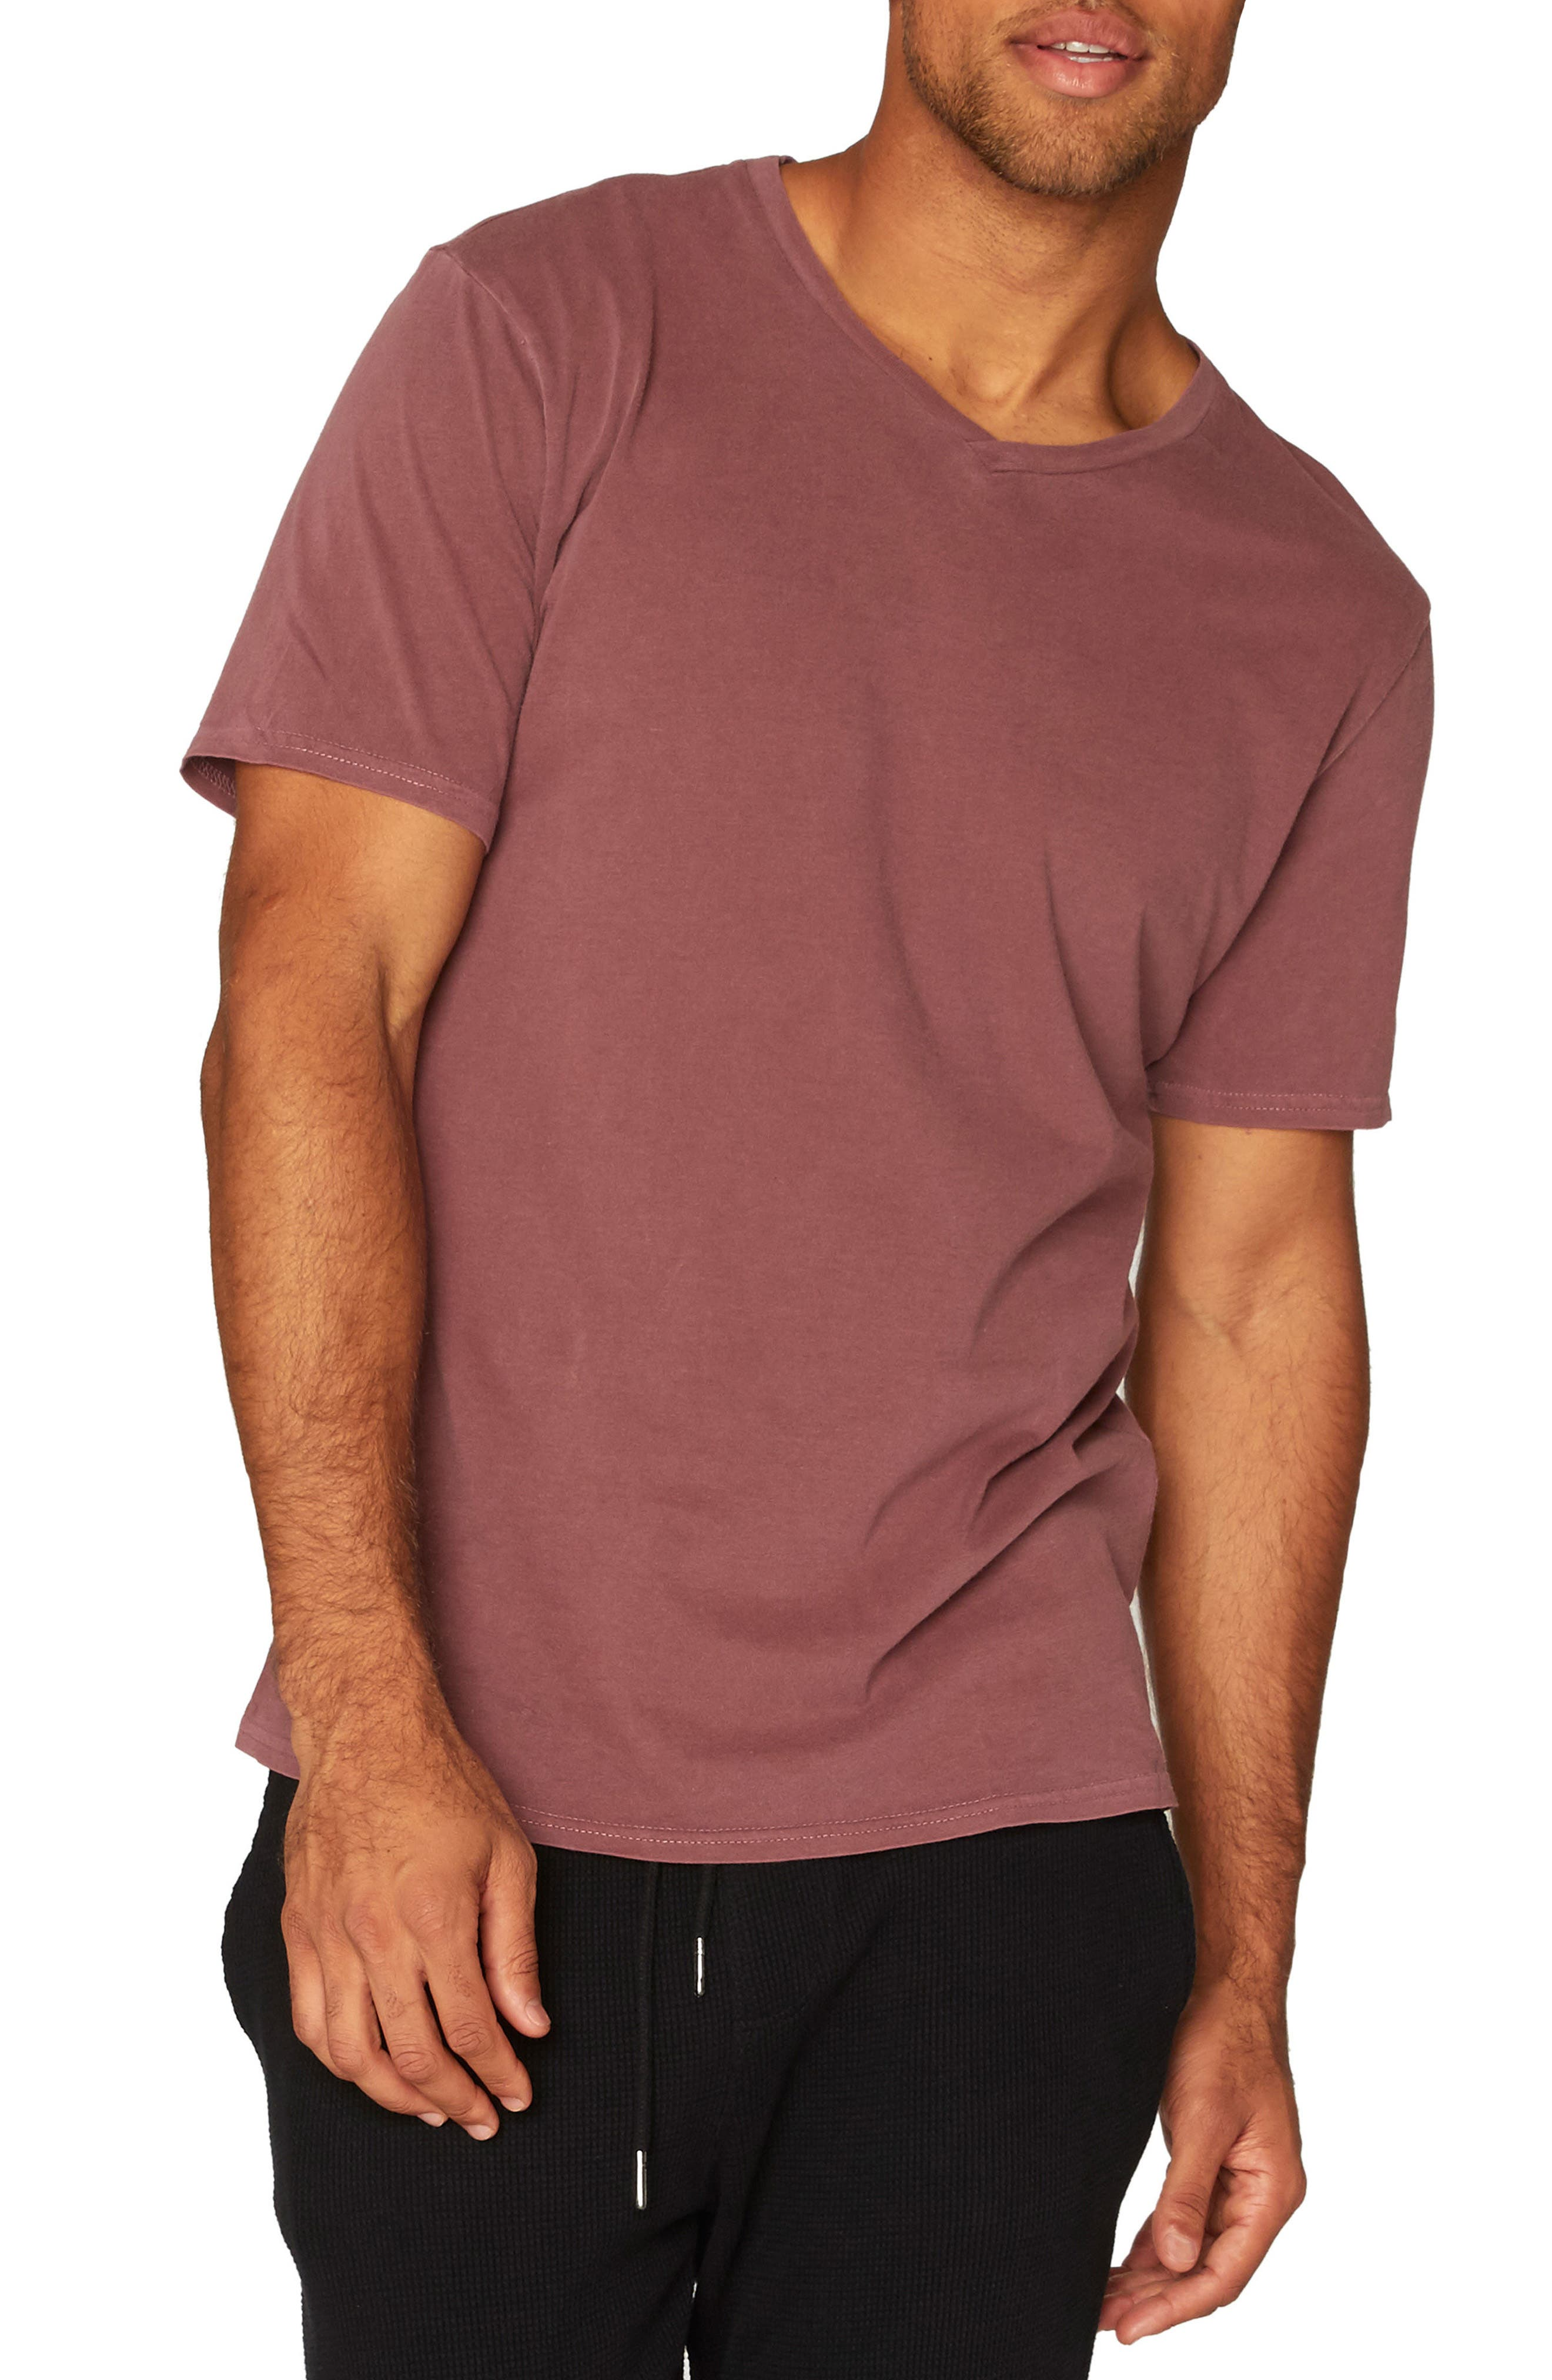 Threads for Thought Standard V-Neck T-Shirt